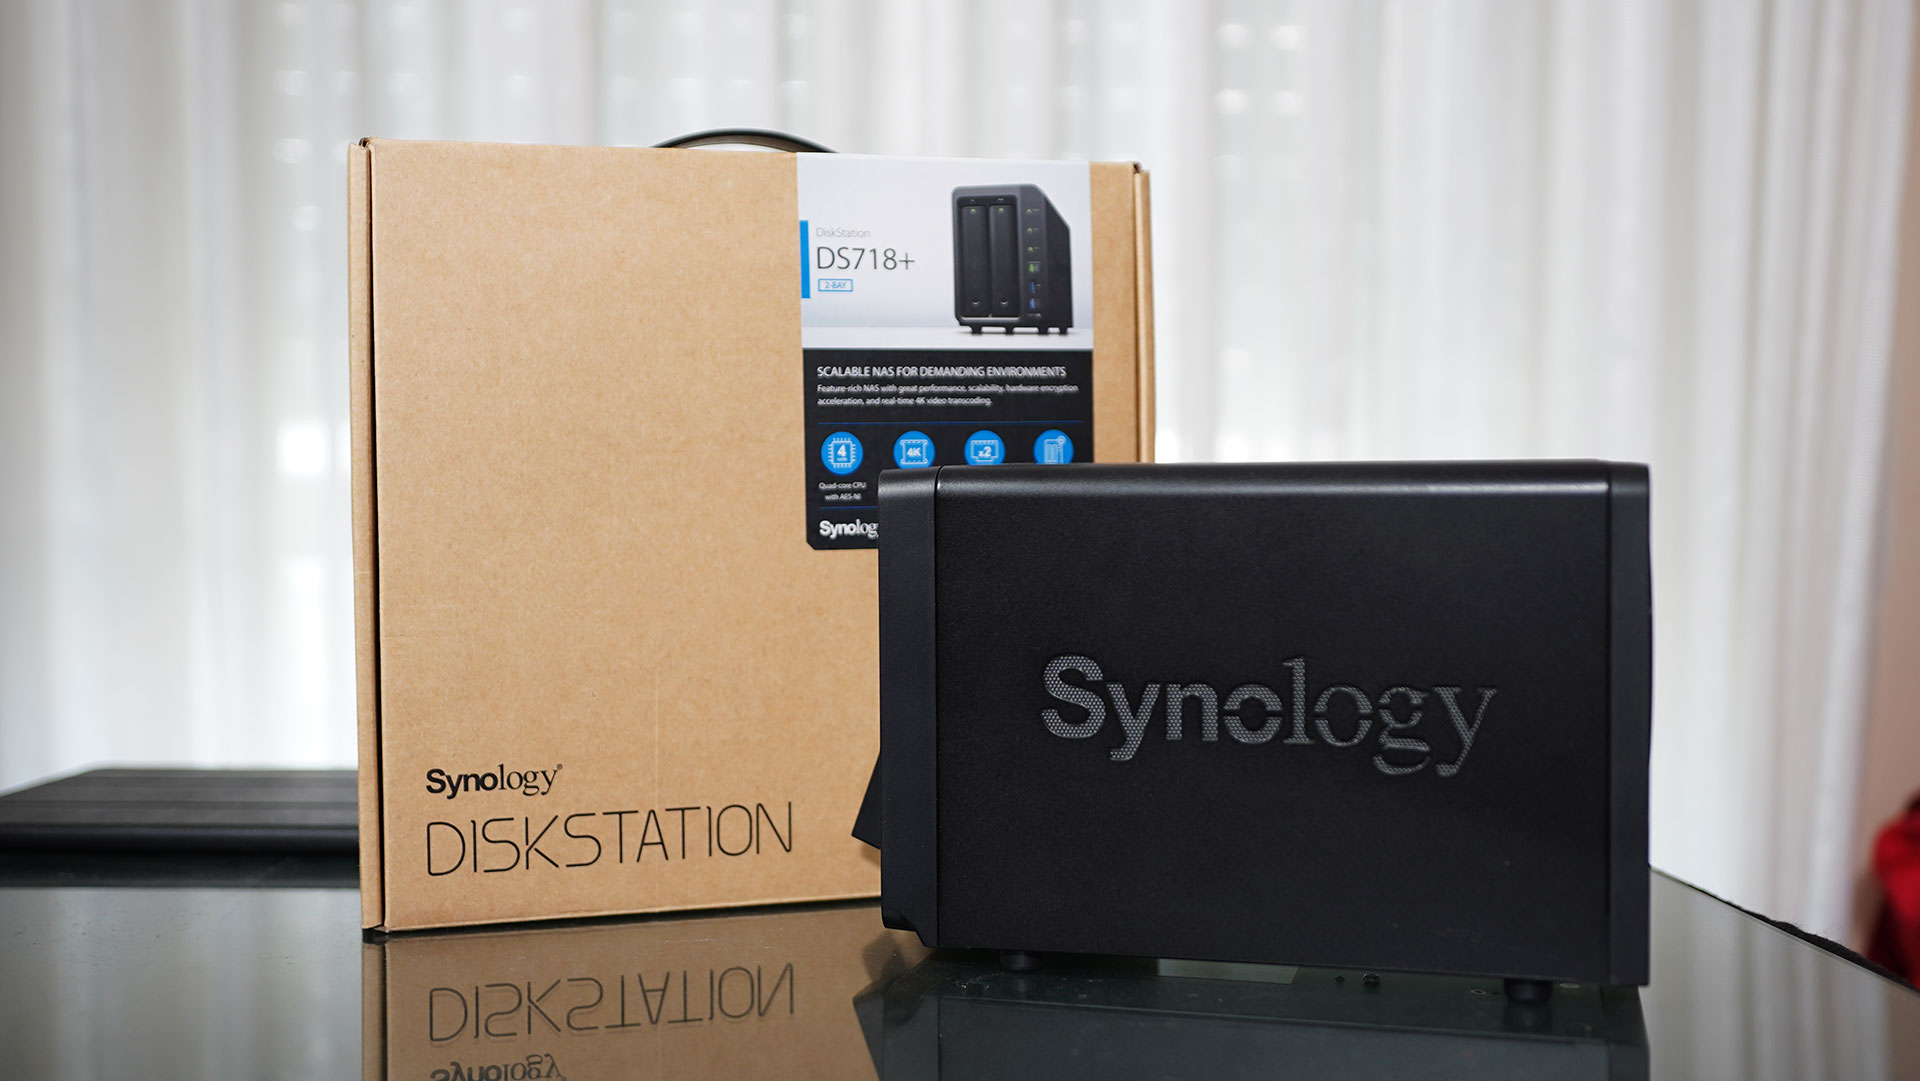 NAS Synology DS718+ Confezione